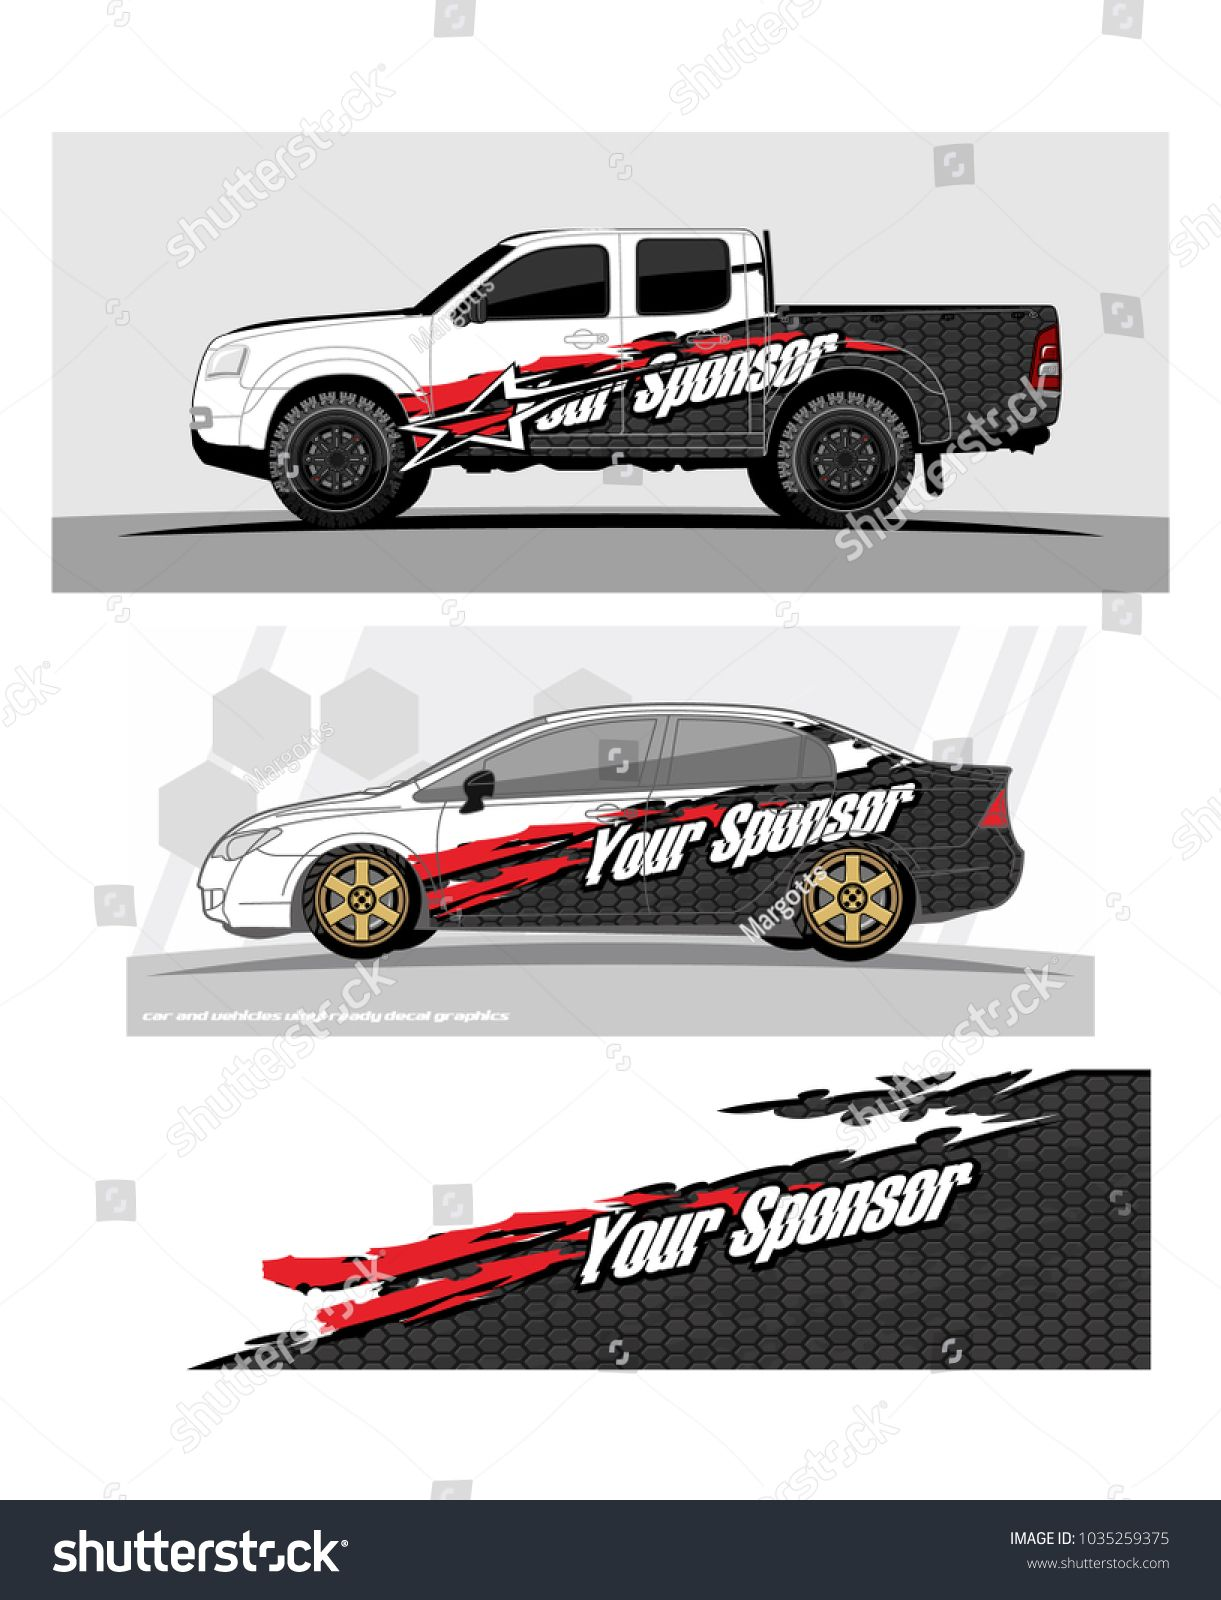 Abstract racing background graphic vector for car truck and vehicles vinyl wrap